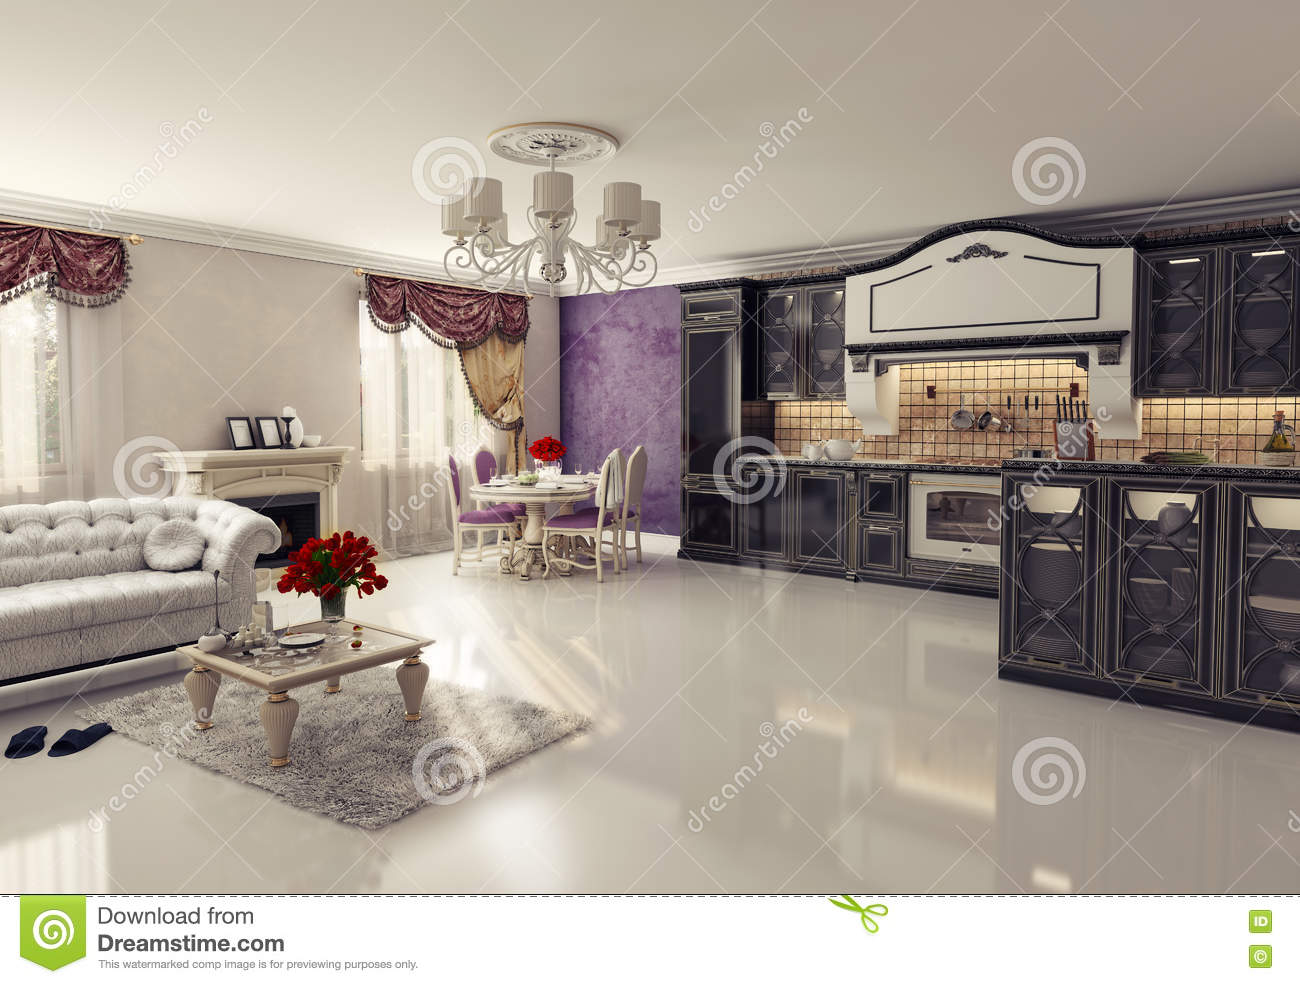 cuisine de luxe illustration stock illustration du contemporain 23841357. Black Bedroom Furniture Sets. Home Design Ideas